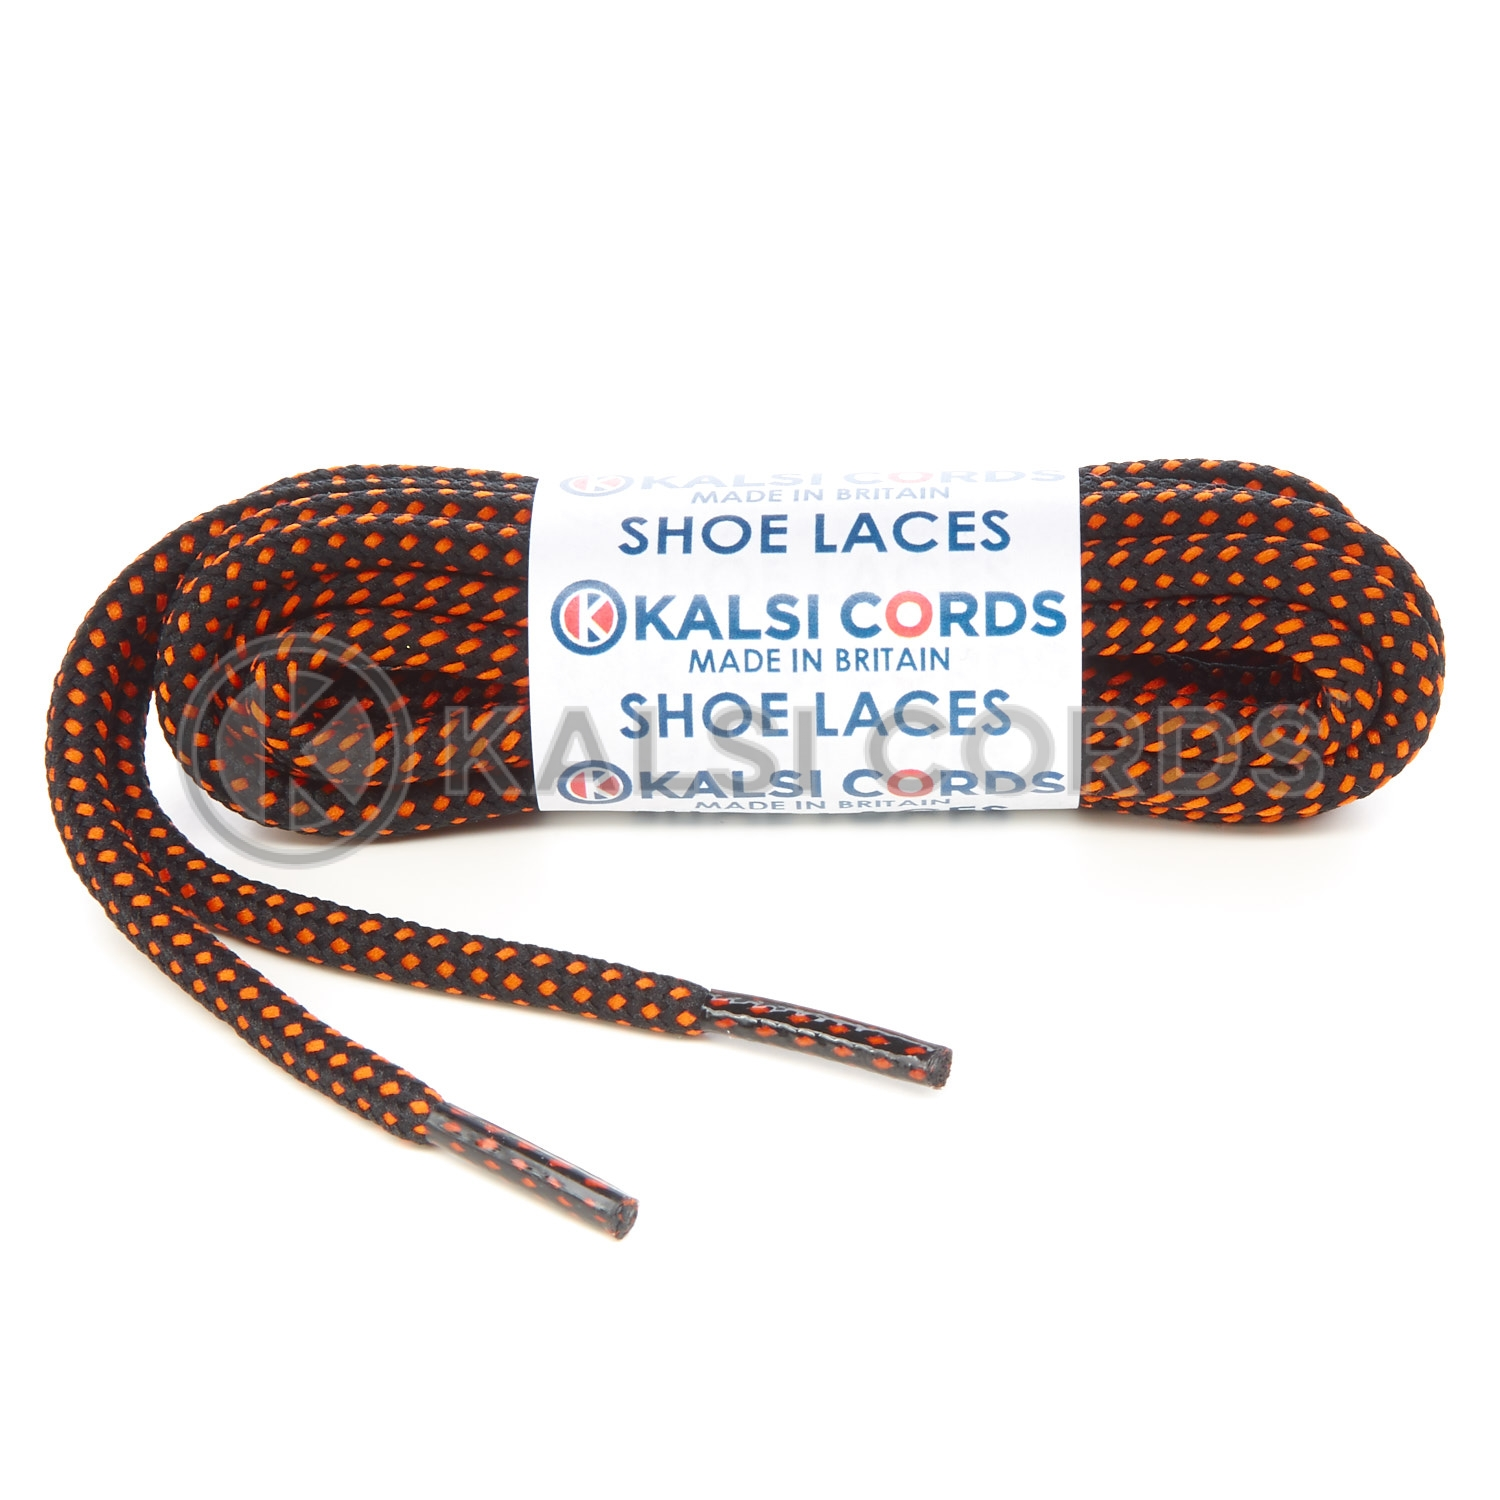 T621 5mm Round Cord Fleck Shoe Laces Black Orange Kids Trainers Adults Hiking Walking Boots Kalsi Cords